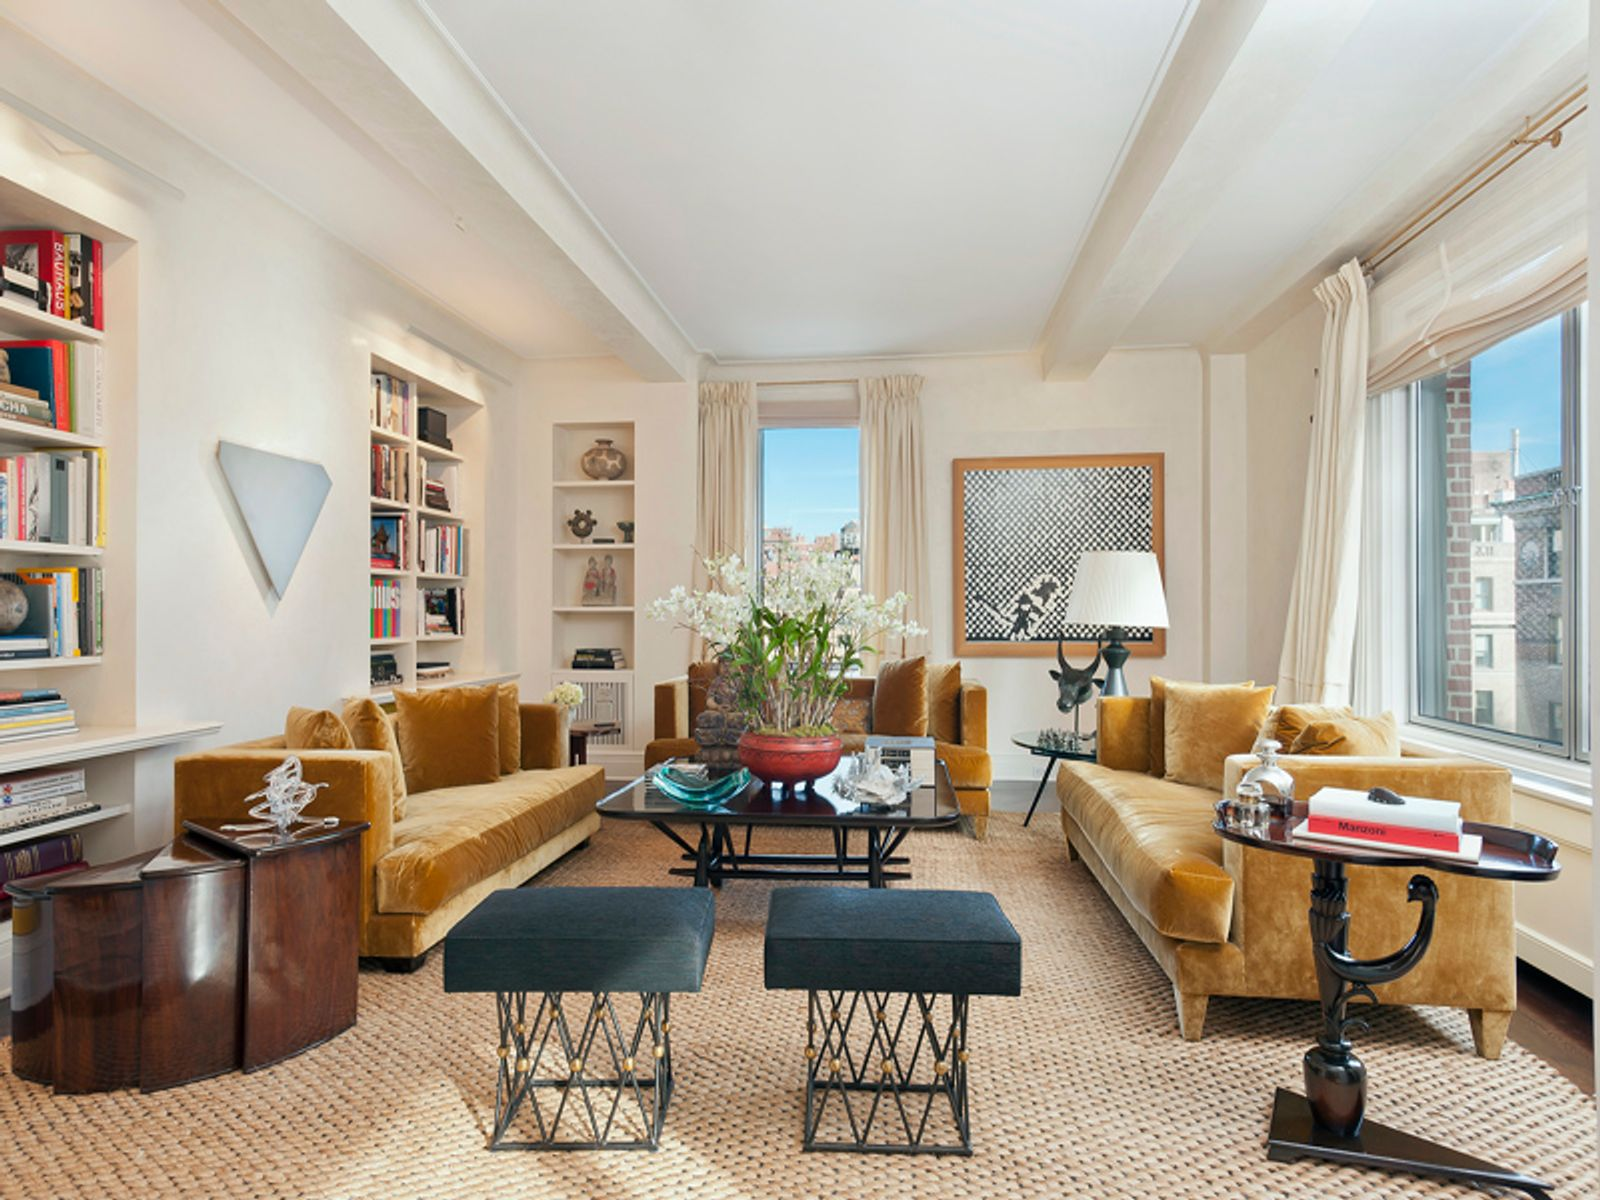 Glamorous Pre-War Duplex on East 72nd St, New York NY Cooperative - New York City Real Estate